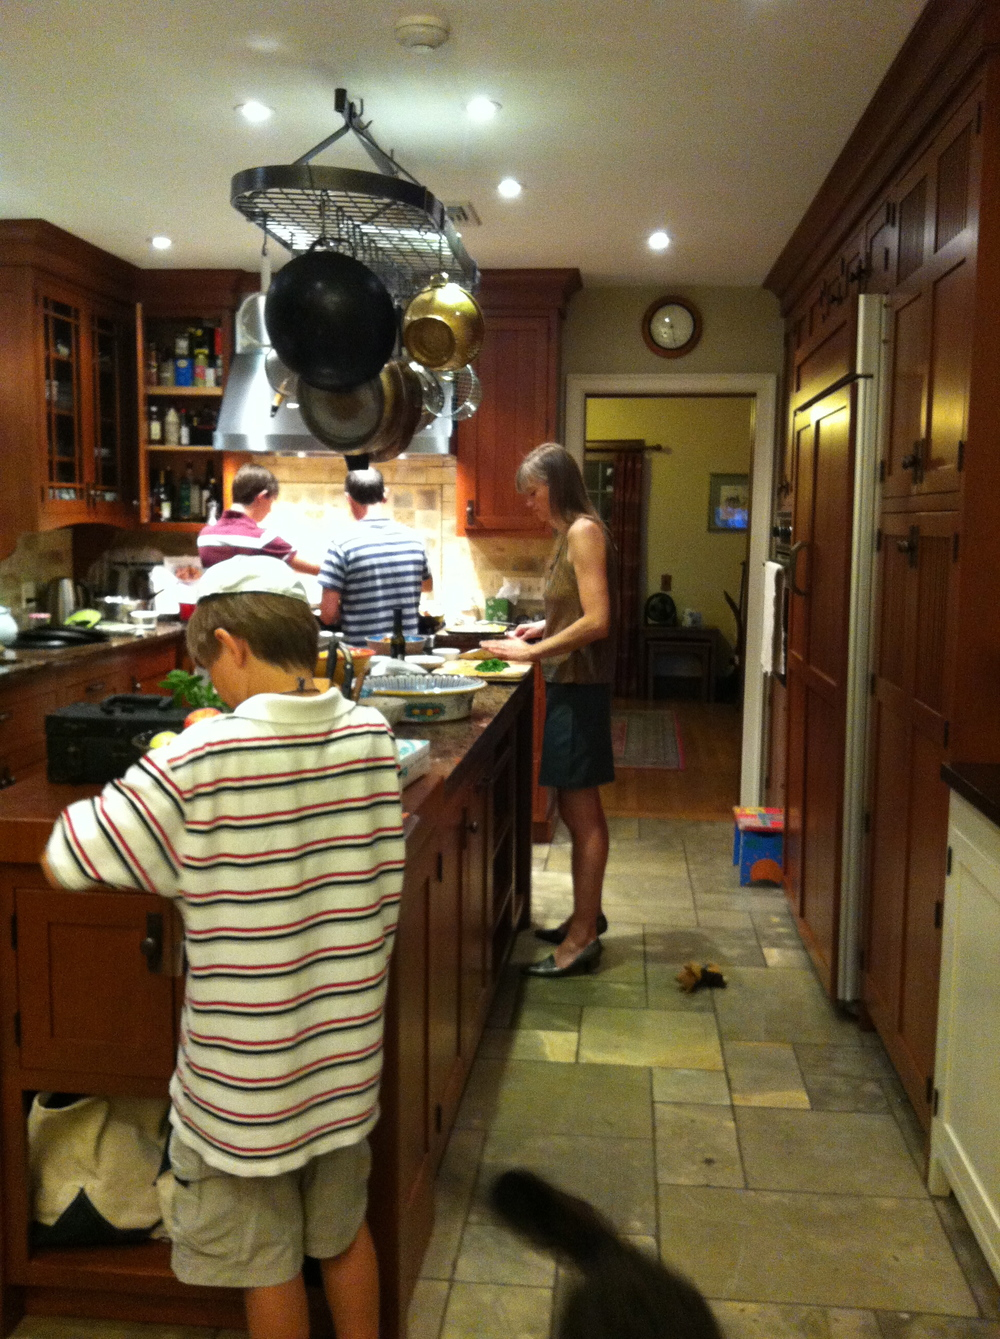 Love Life and Lollipops- The family that cooks together, stays together!